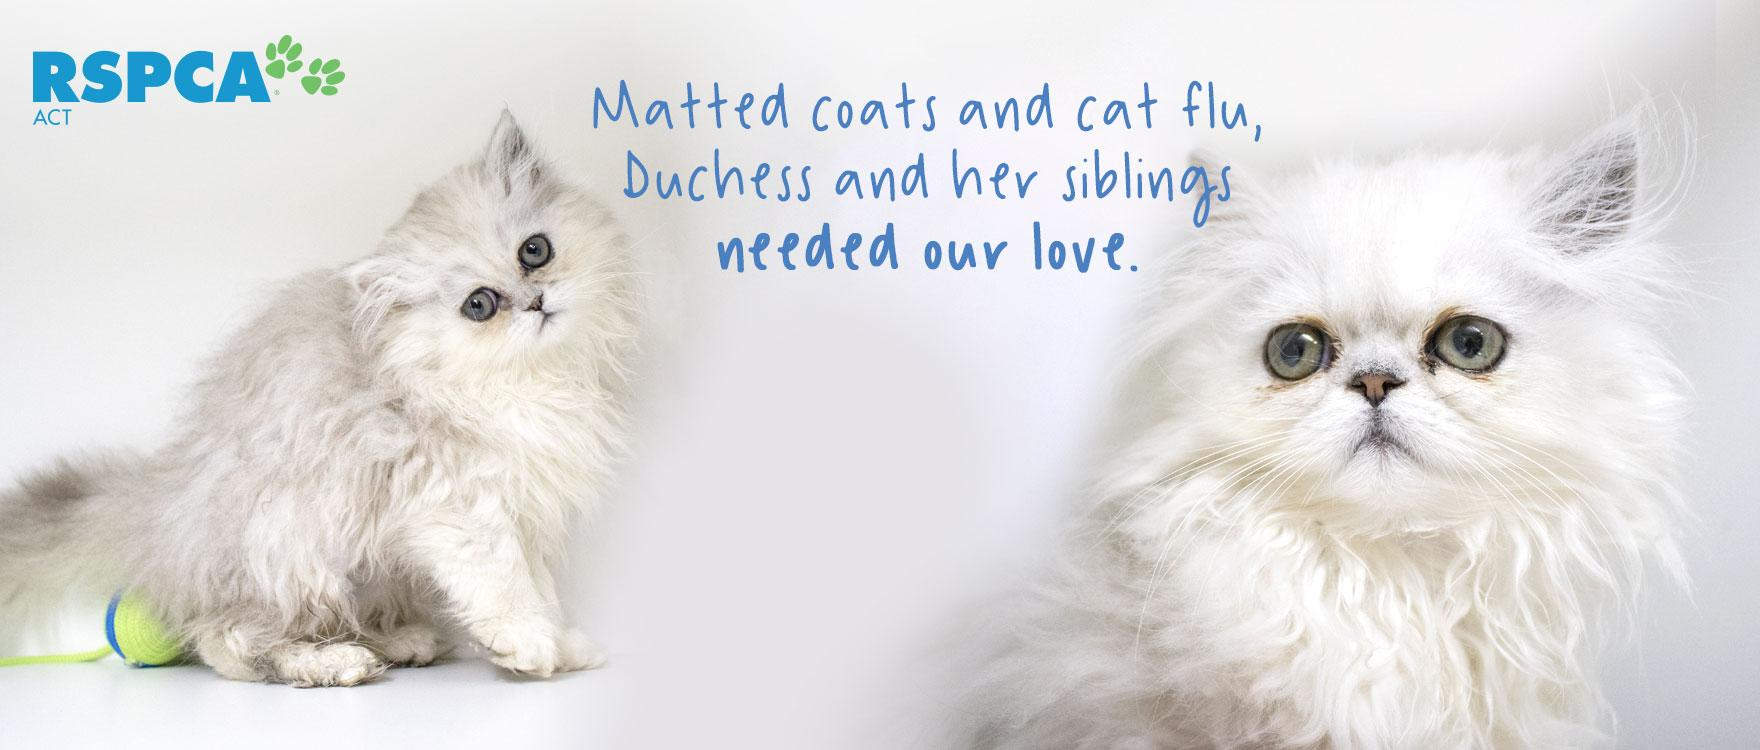 Matted coats and cat flu, Duchess and her siblings needed our love.